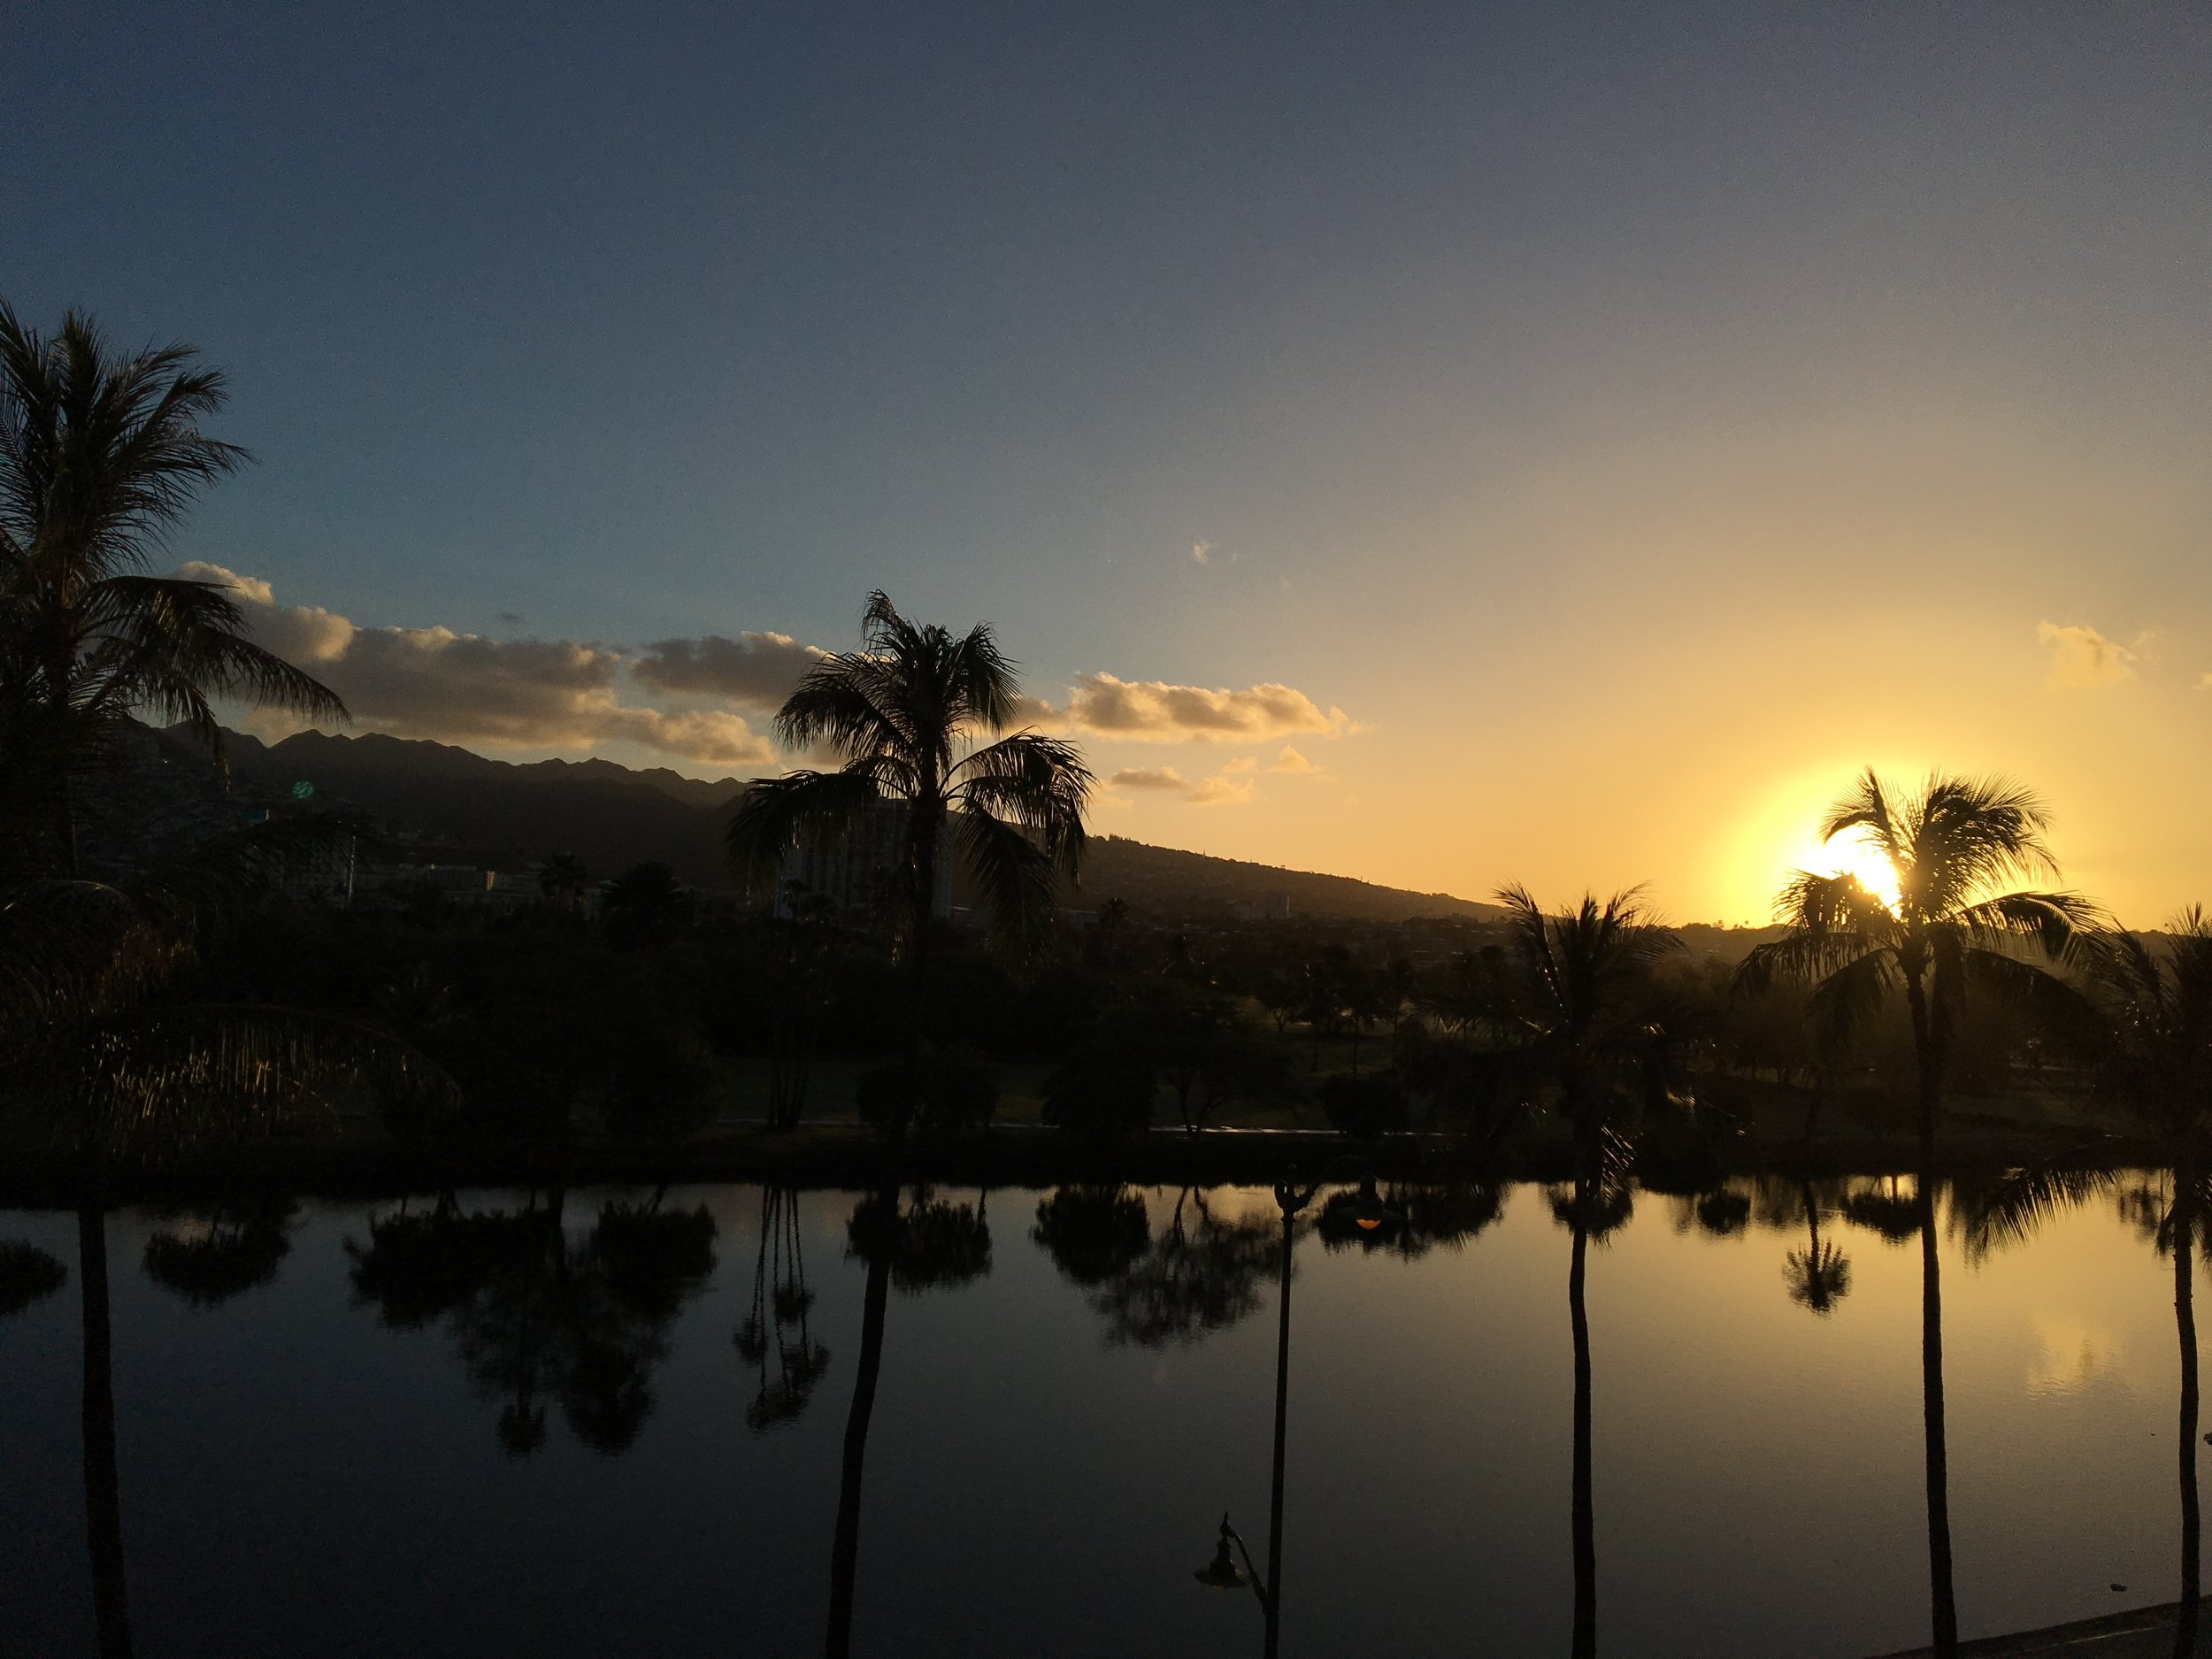 Sun Rise in Oahu, Hawaii